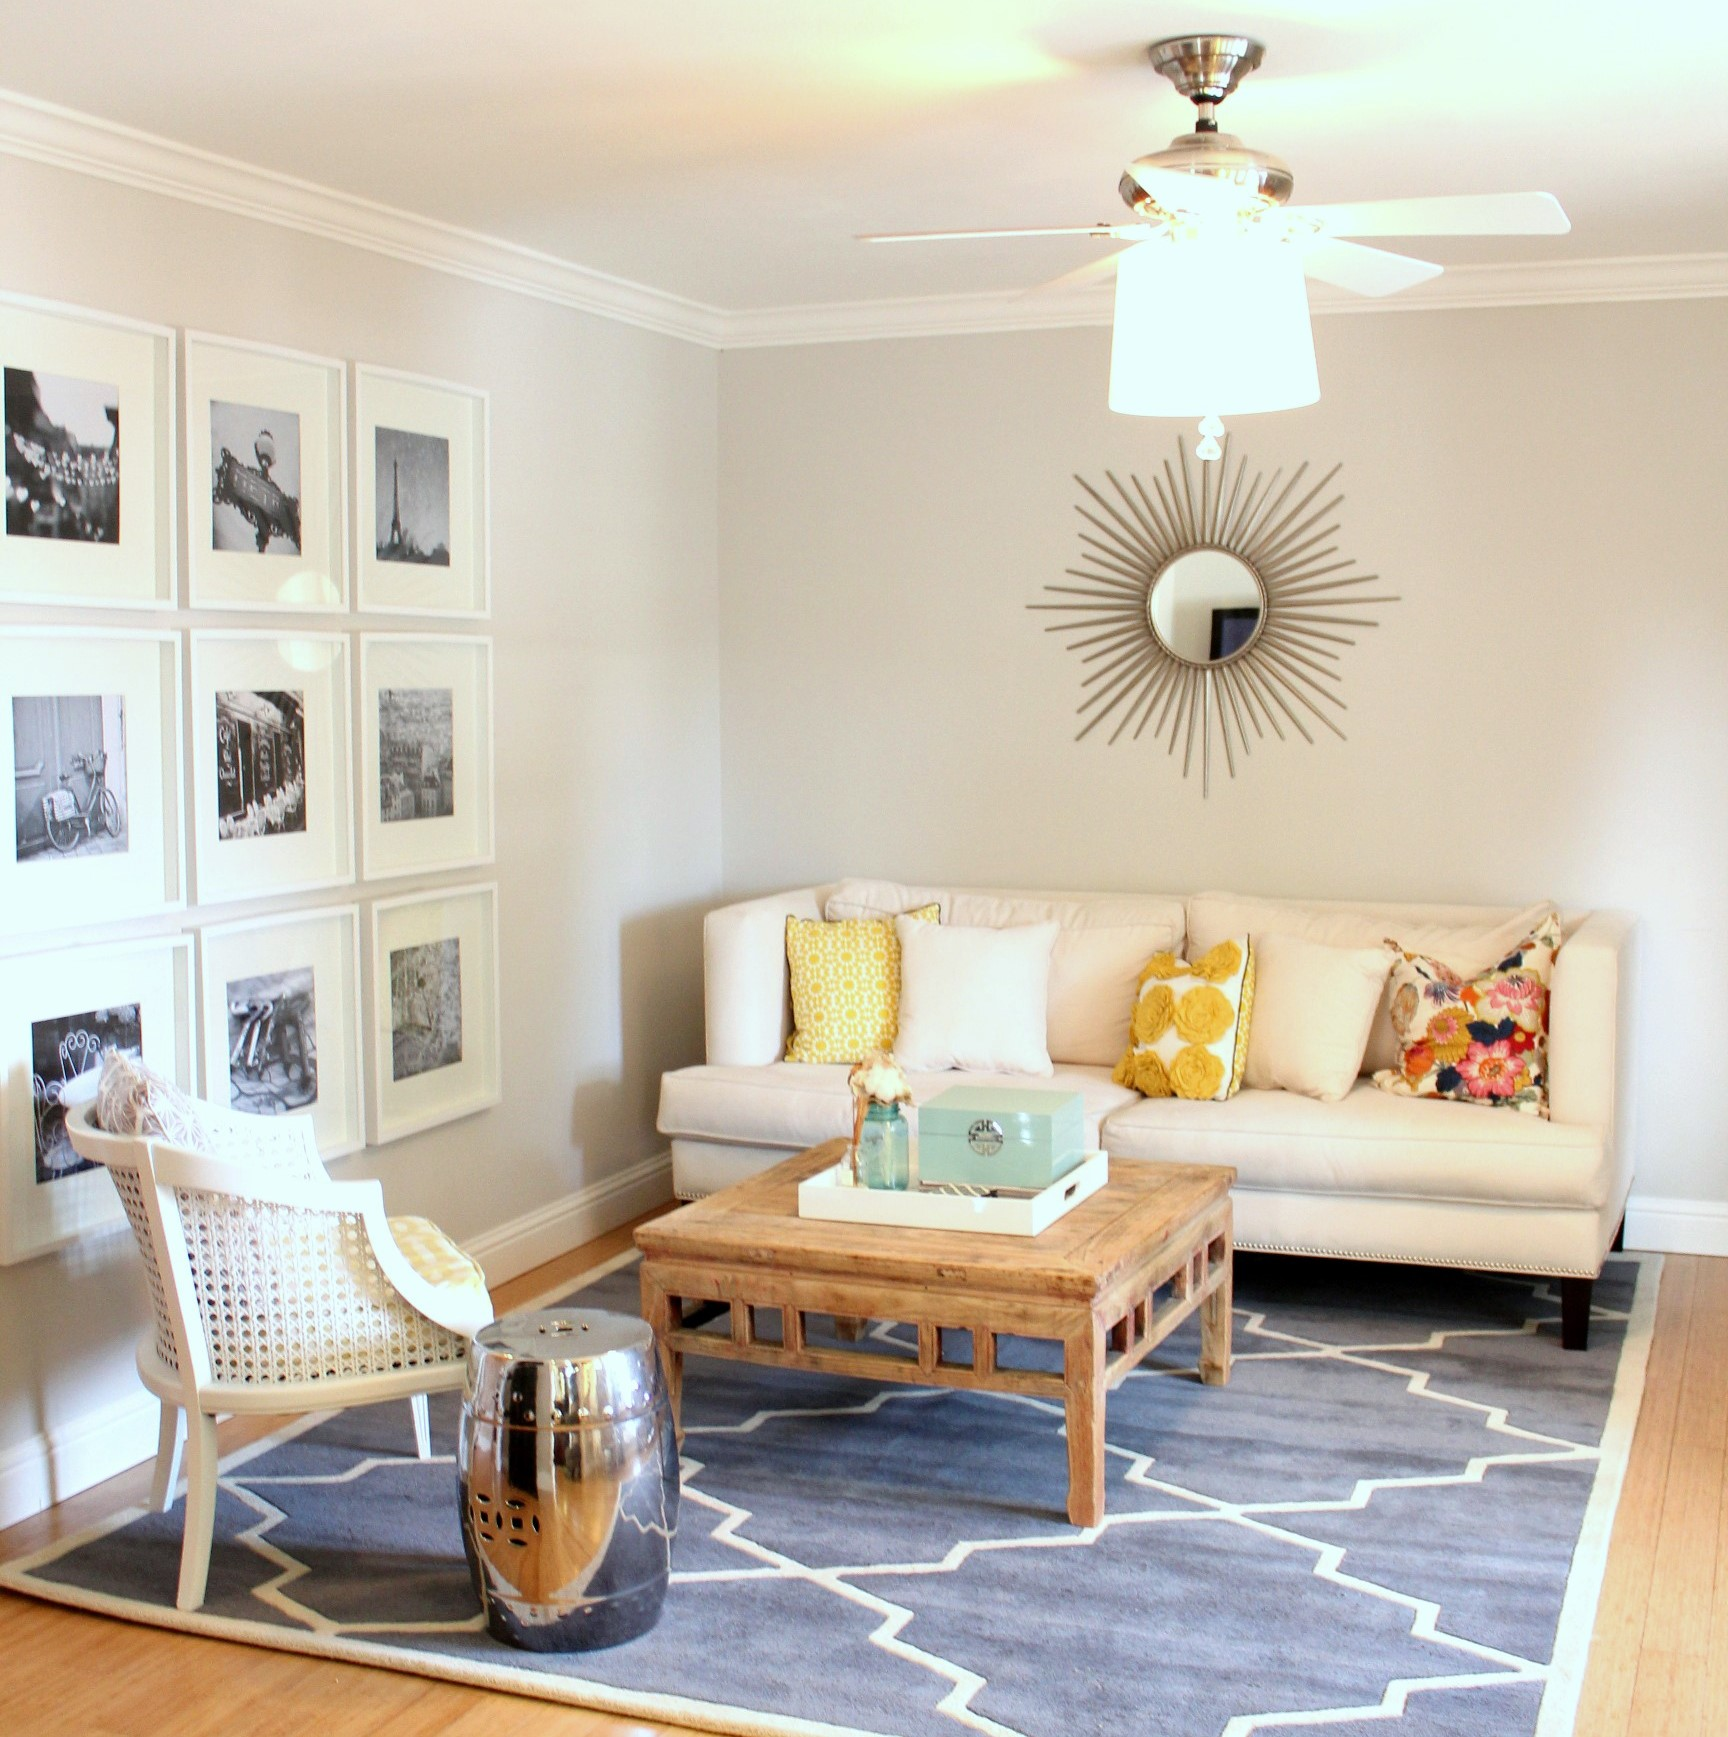 Help What Color Should We Paint Our Living Room: FAQs When Selling Your Home